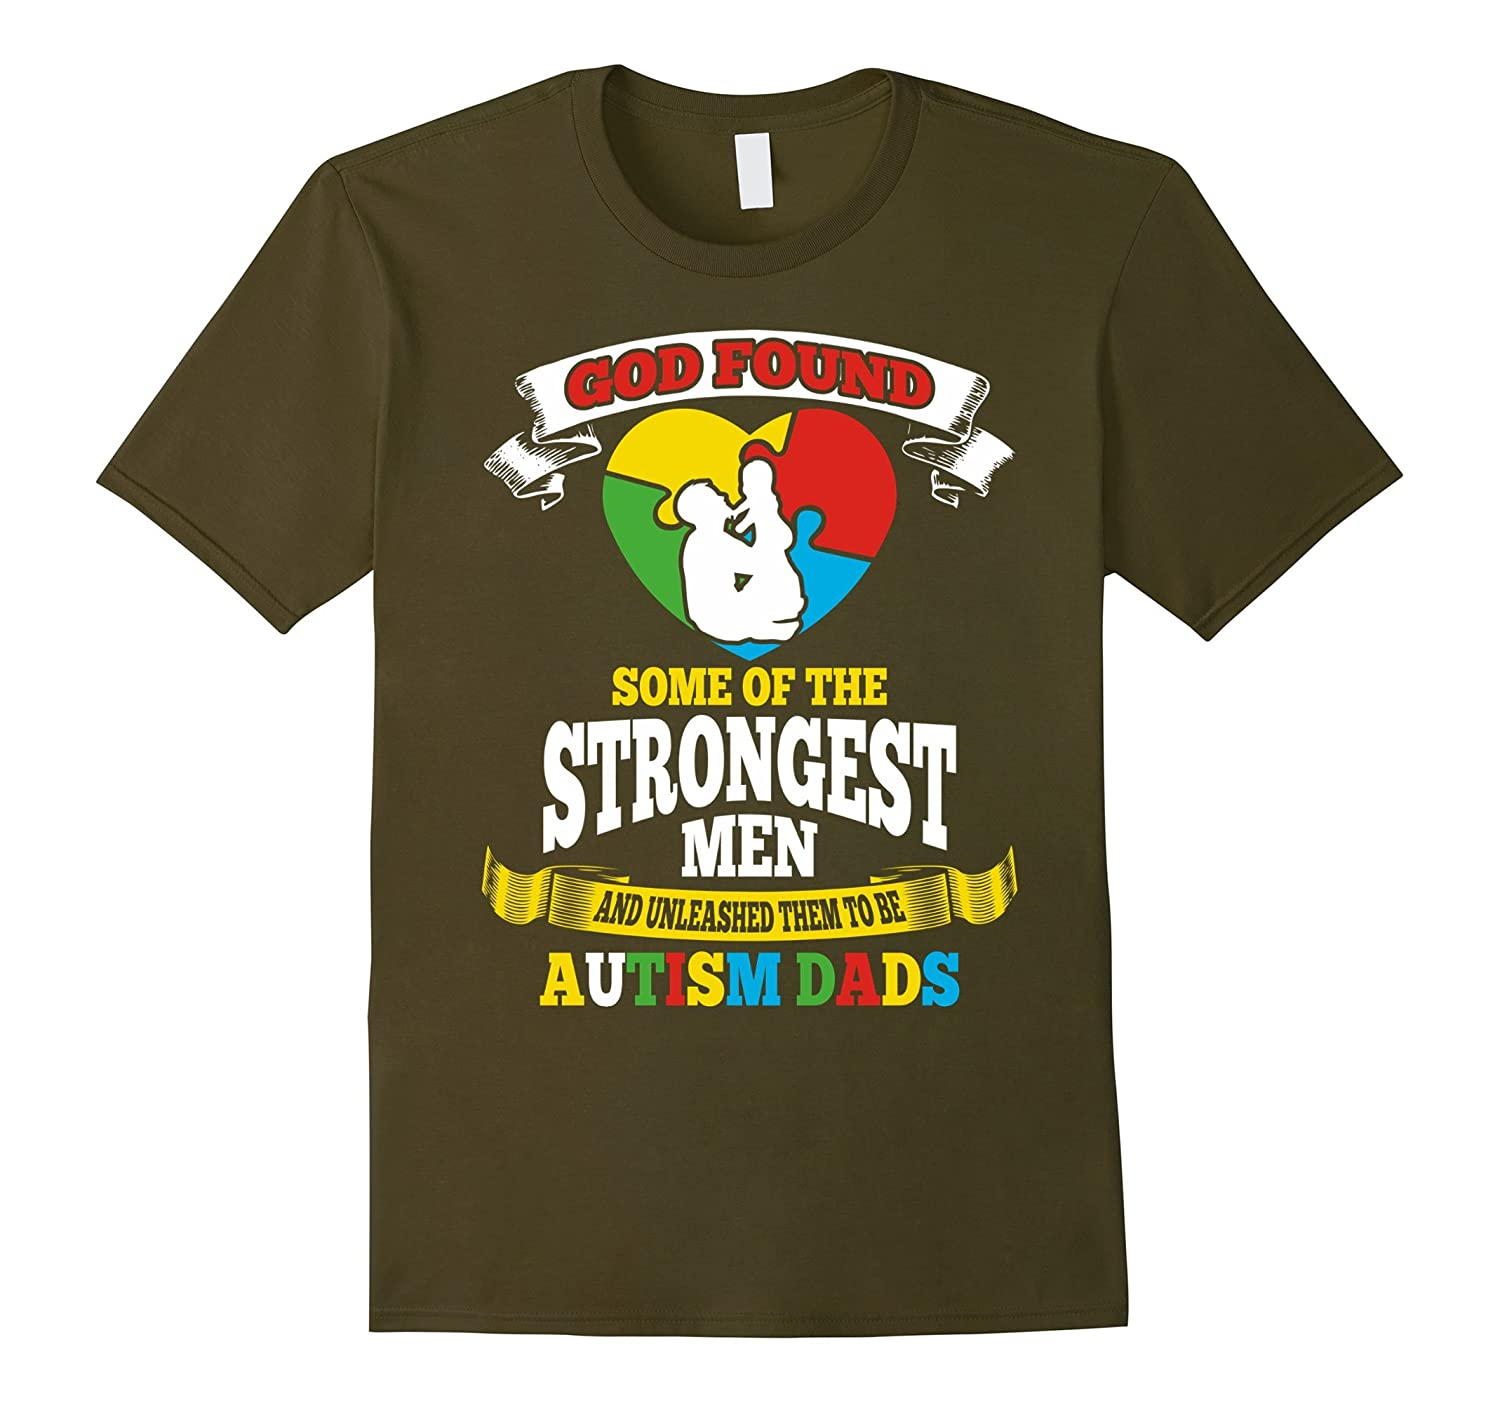 God Found Some Of The Strongest Men Autism Dads TShirt-TH